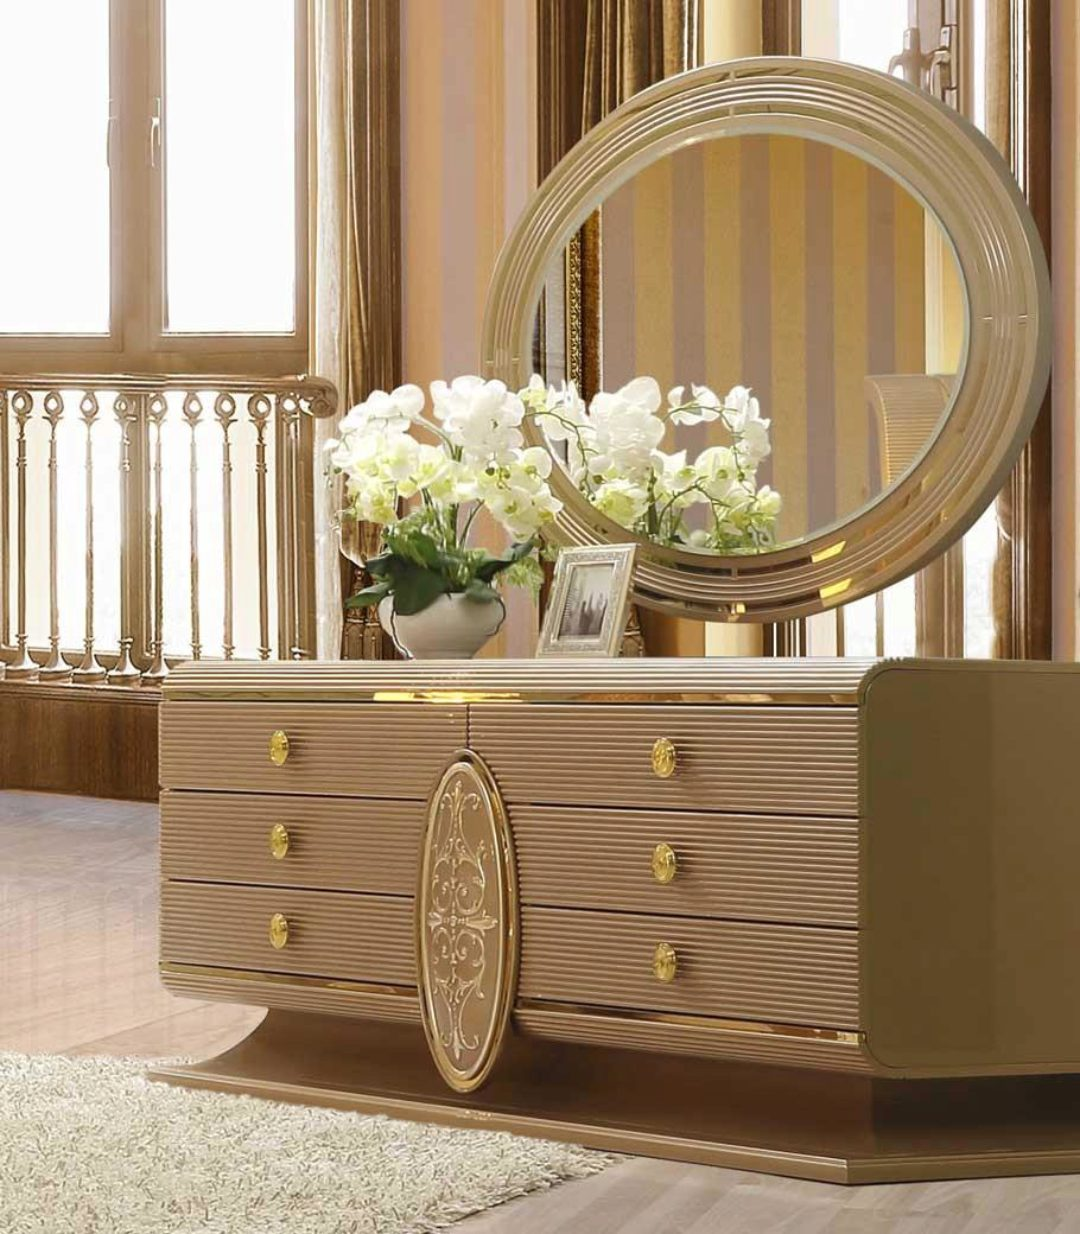 Belle Silver Finish Leather Cal King Bedroom Set 5pcs Contemporary Homey Design Hd 922 Hd 922 Bset5 Ck